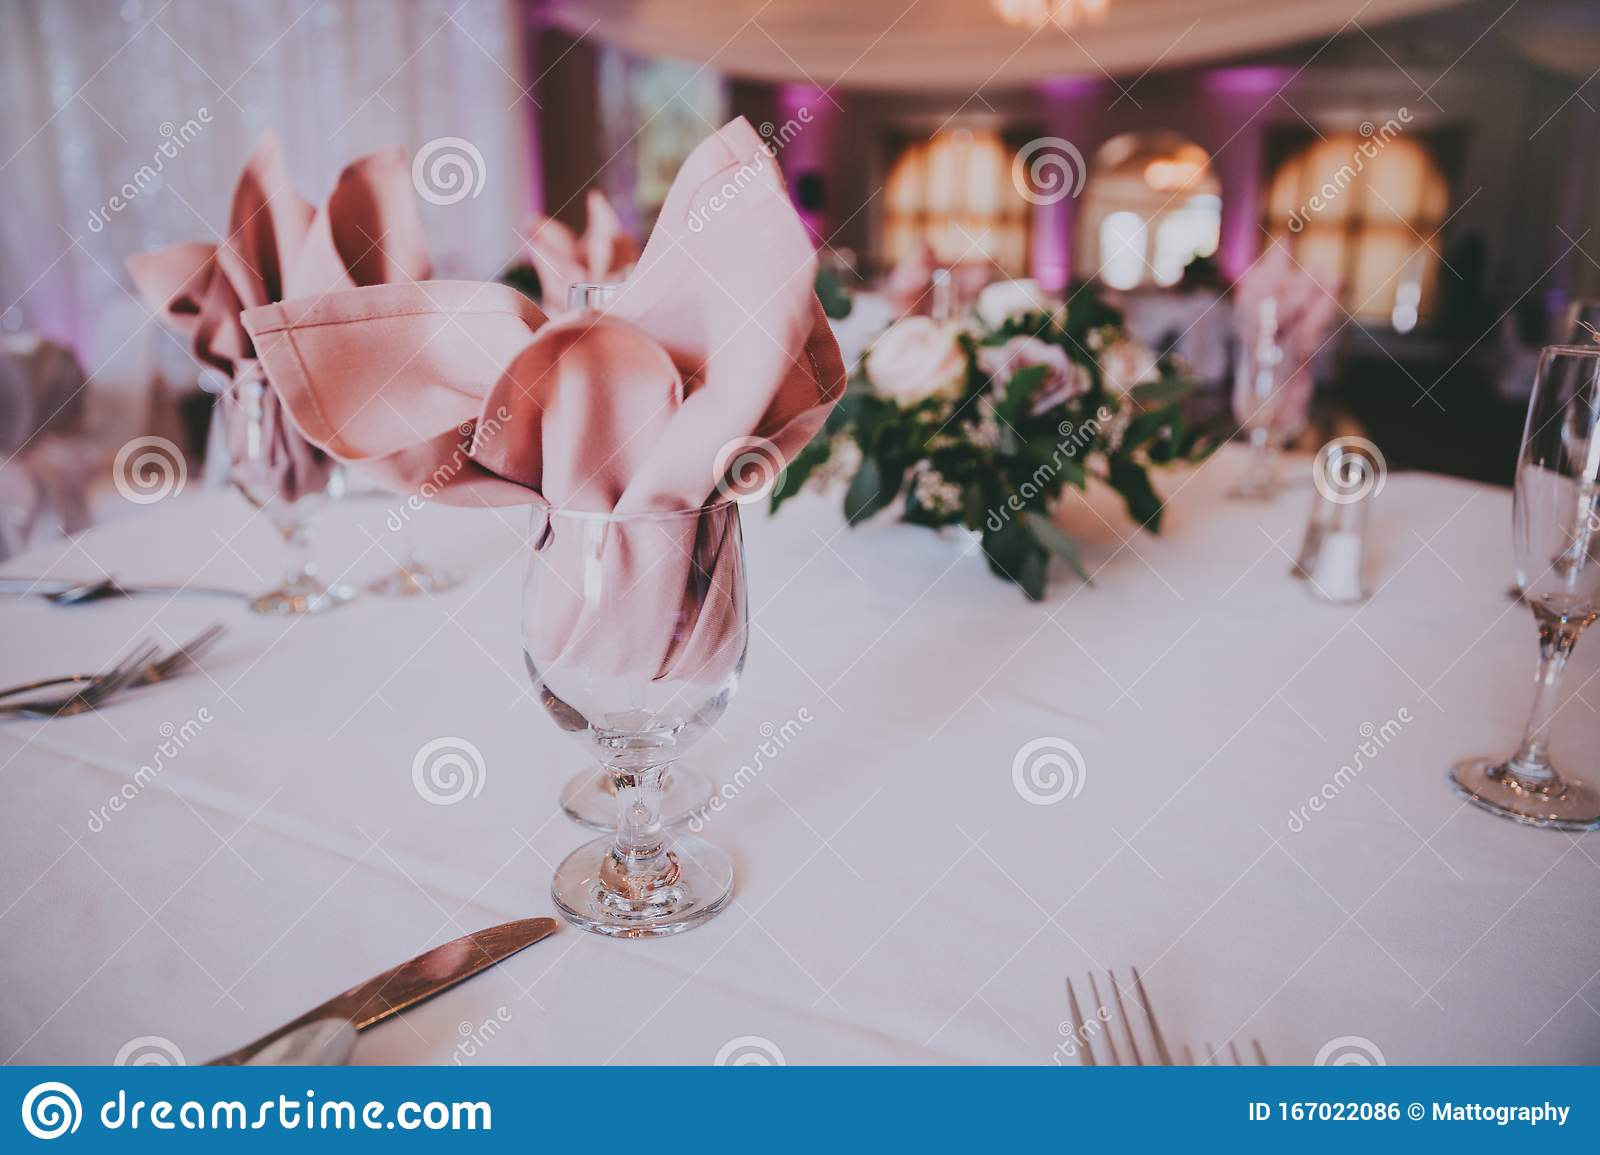 Place Settings For A Wedding Reception Stock Photo Image Of Celebration Glasses 167022086